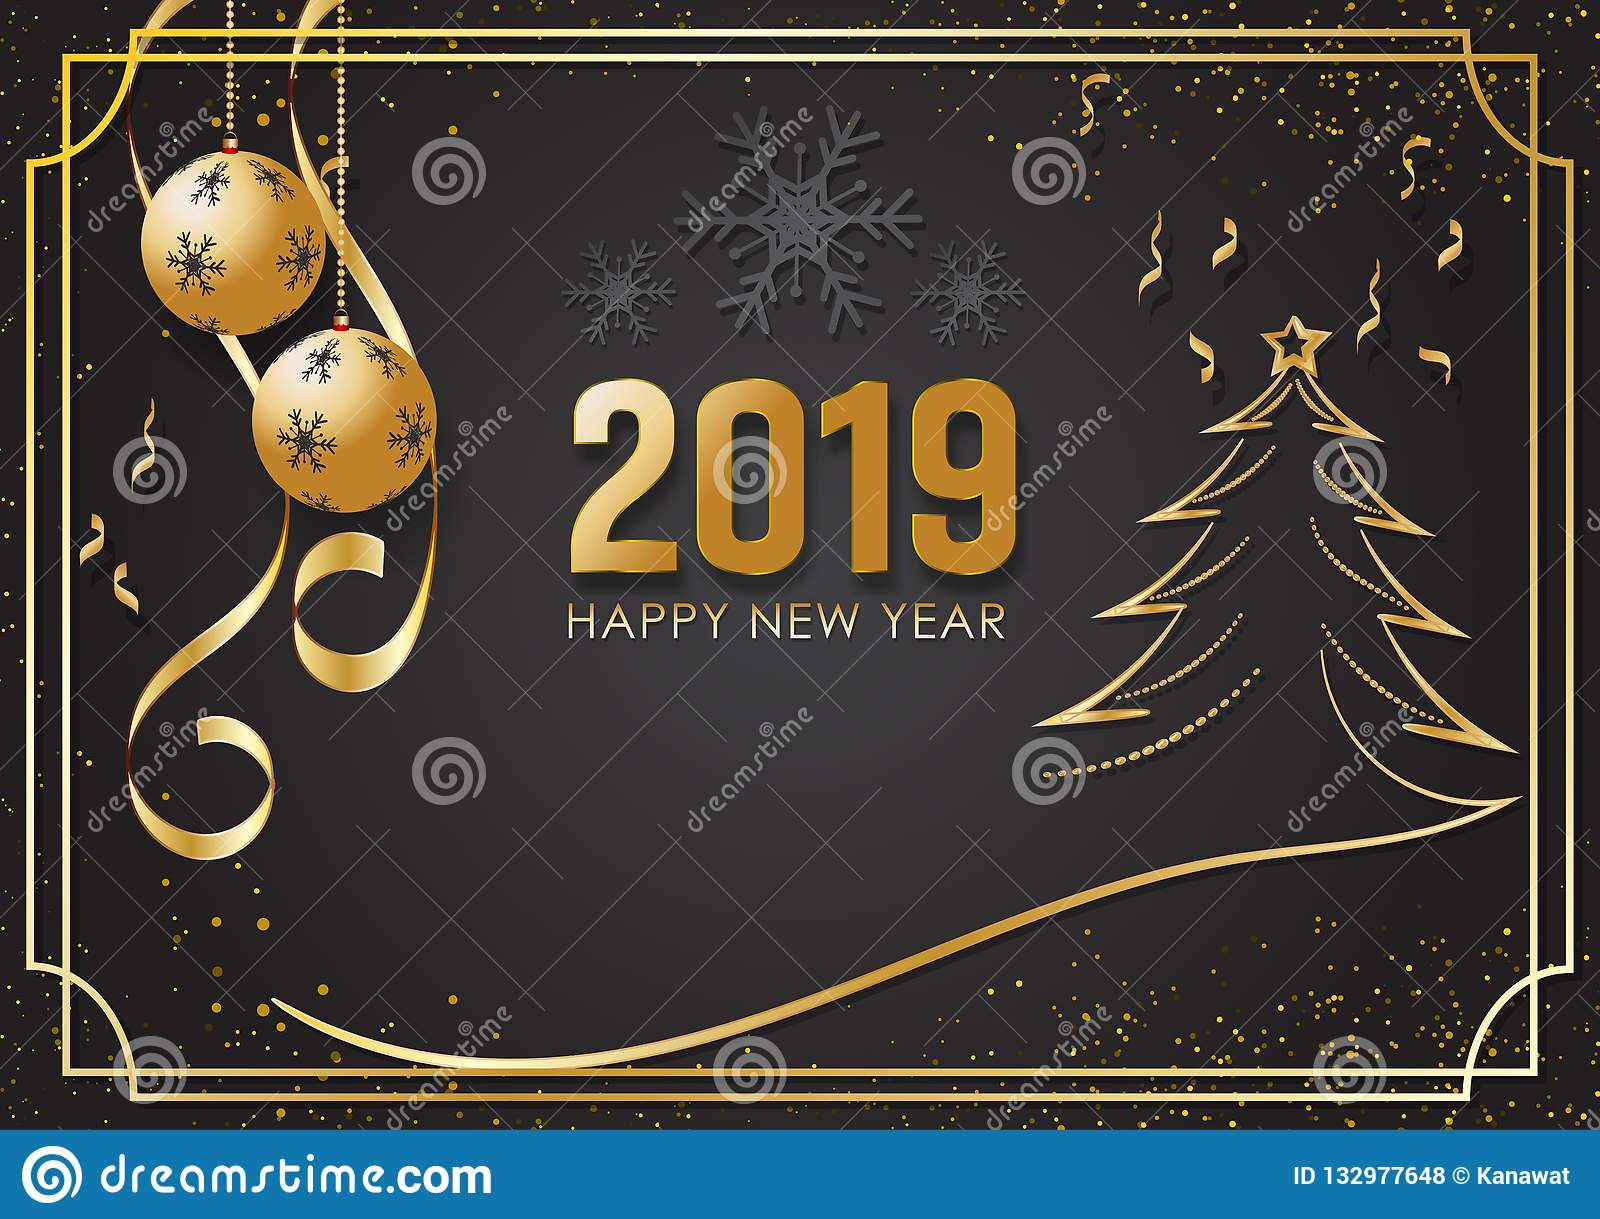 Christmas Season 2019 Black And Gold Background For Happy New Year 2019 And Christmas